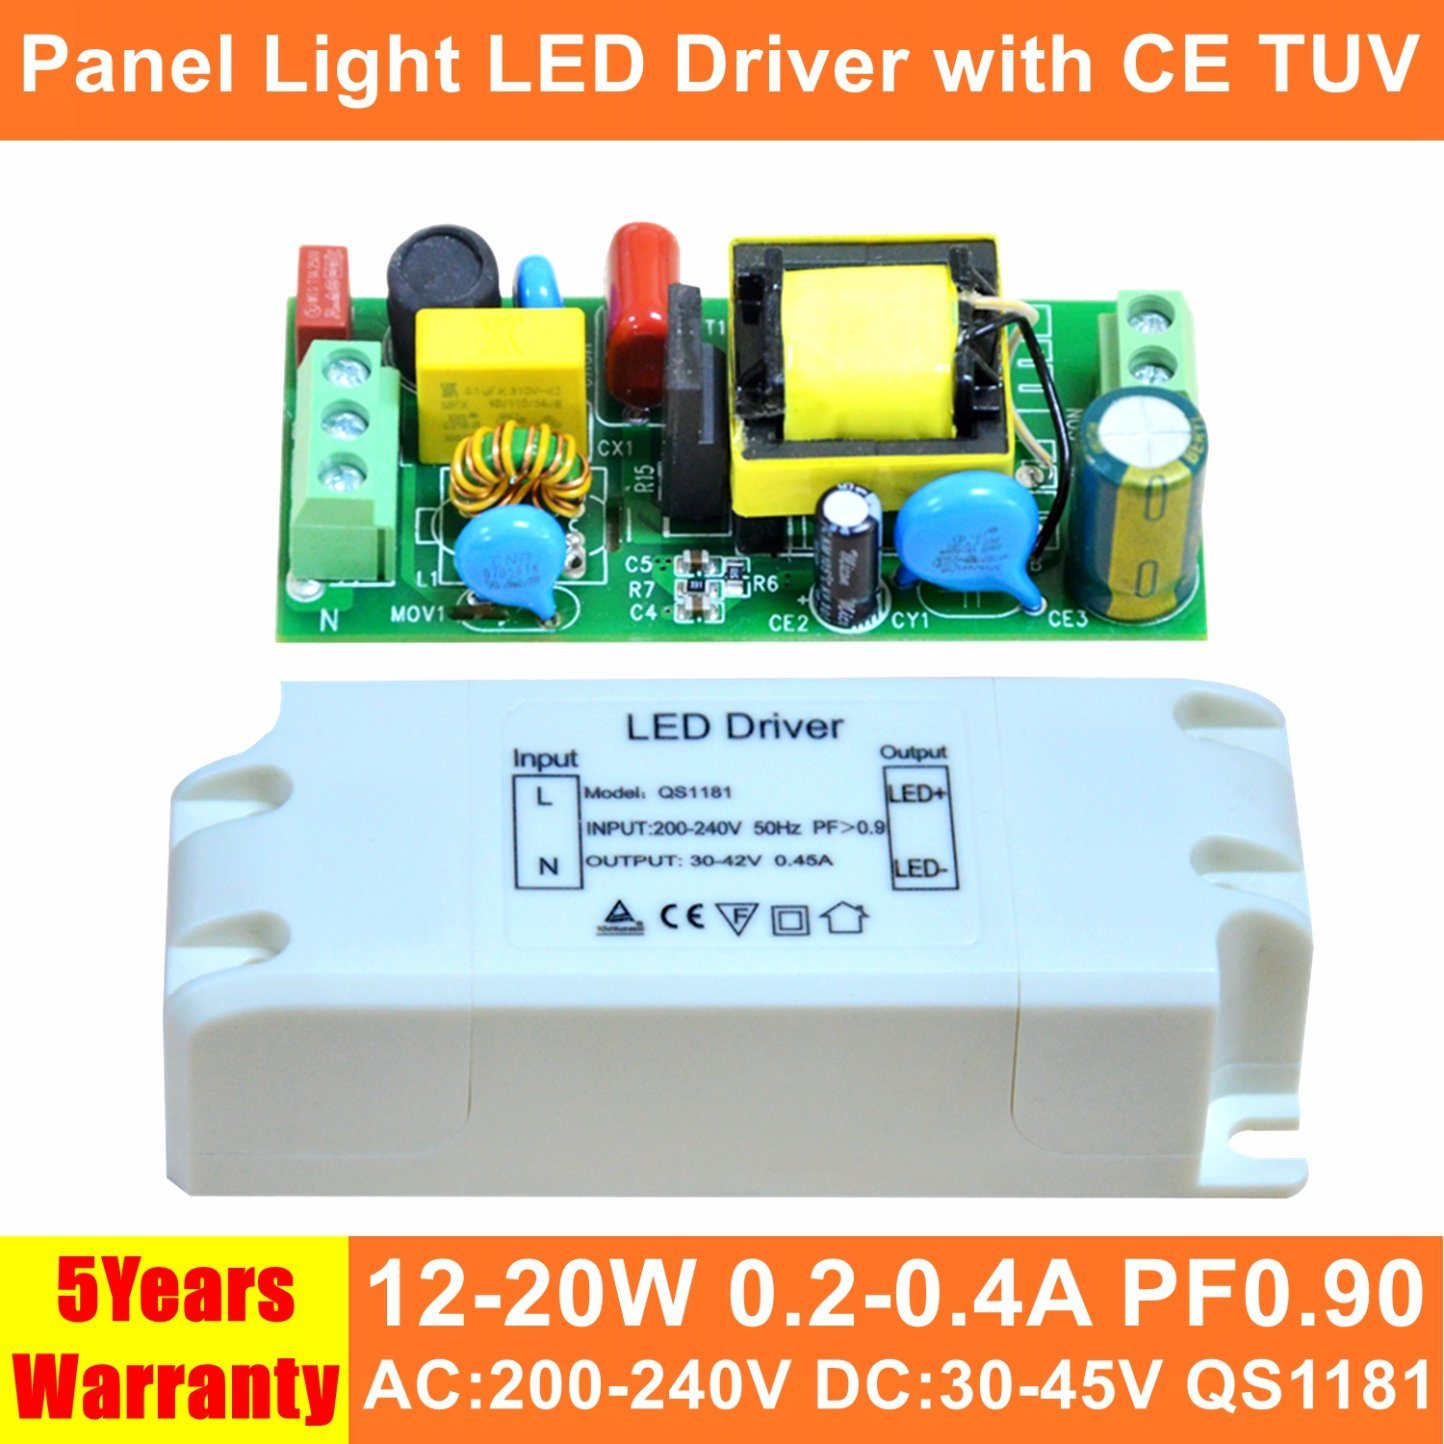 China 18w Isolated Hpf Panel Light Led Power Supply With Ce Tuv Circuit Qs1181 Driver Switch